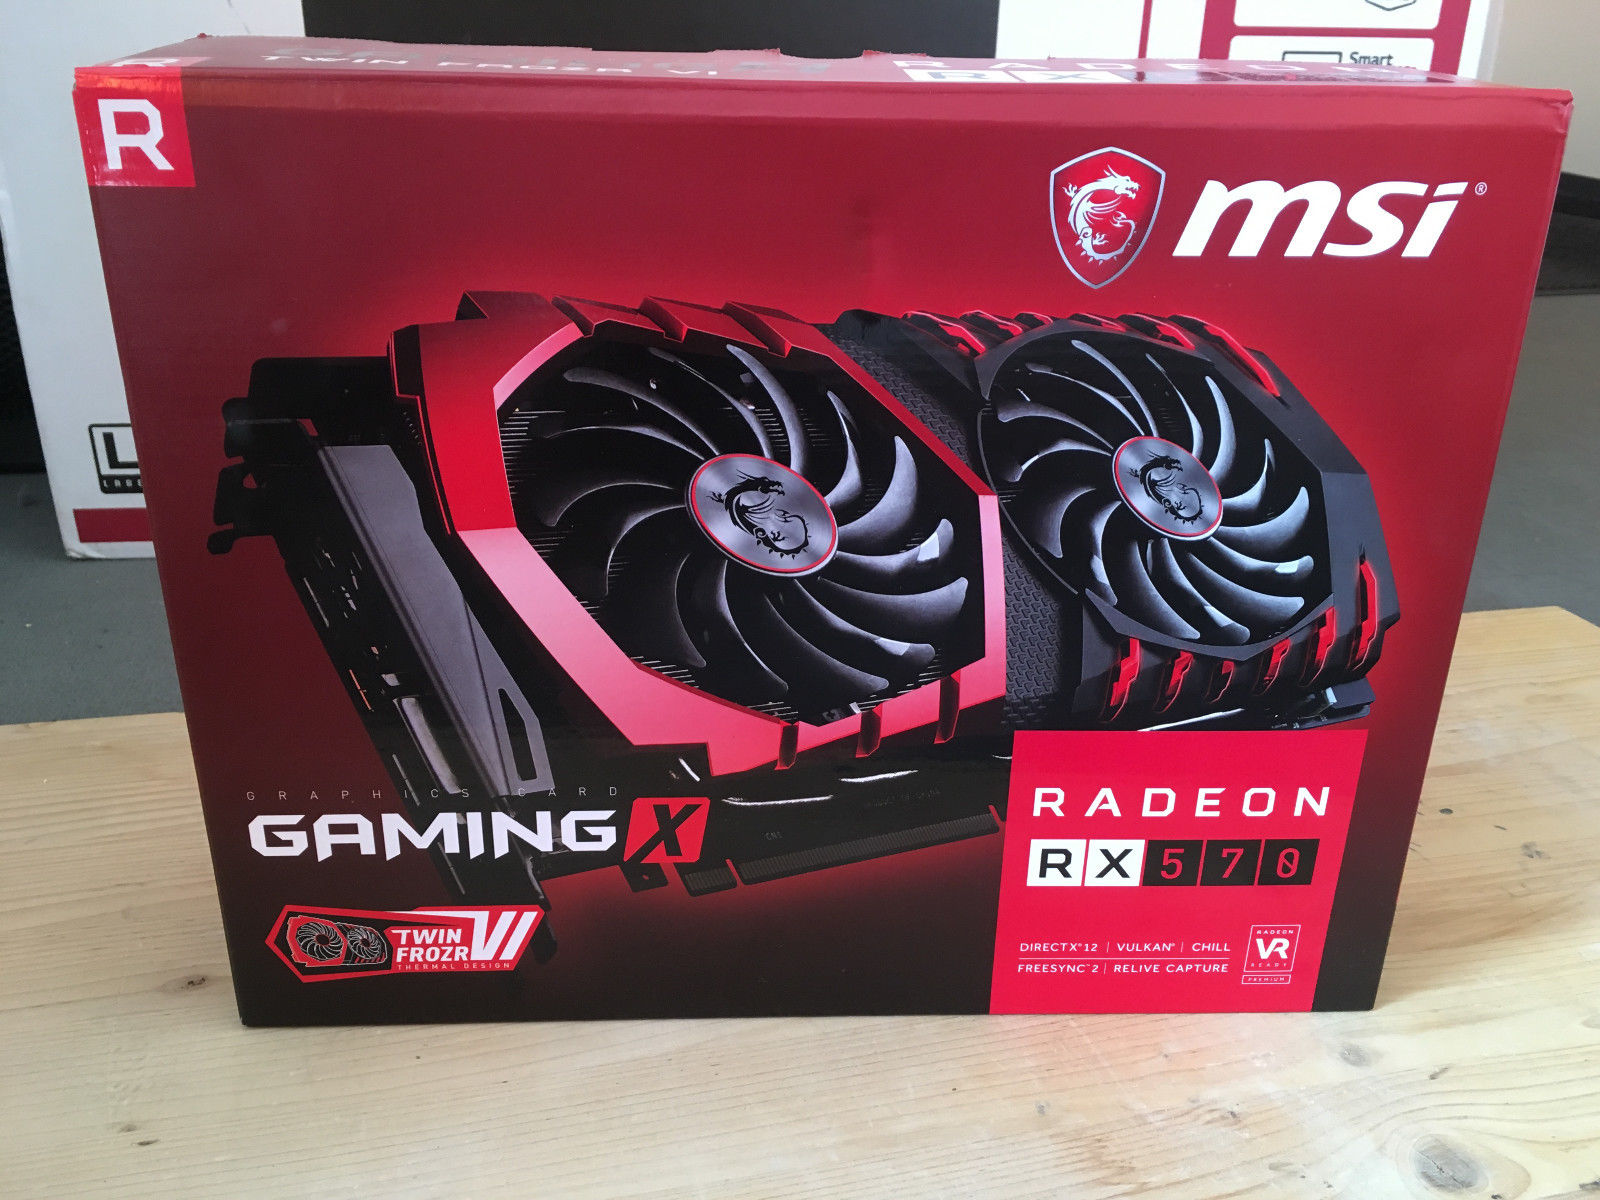 MSI Radeon RX 570 Gaming X Being Sold on eBay For $380 US